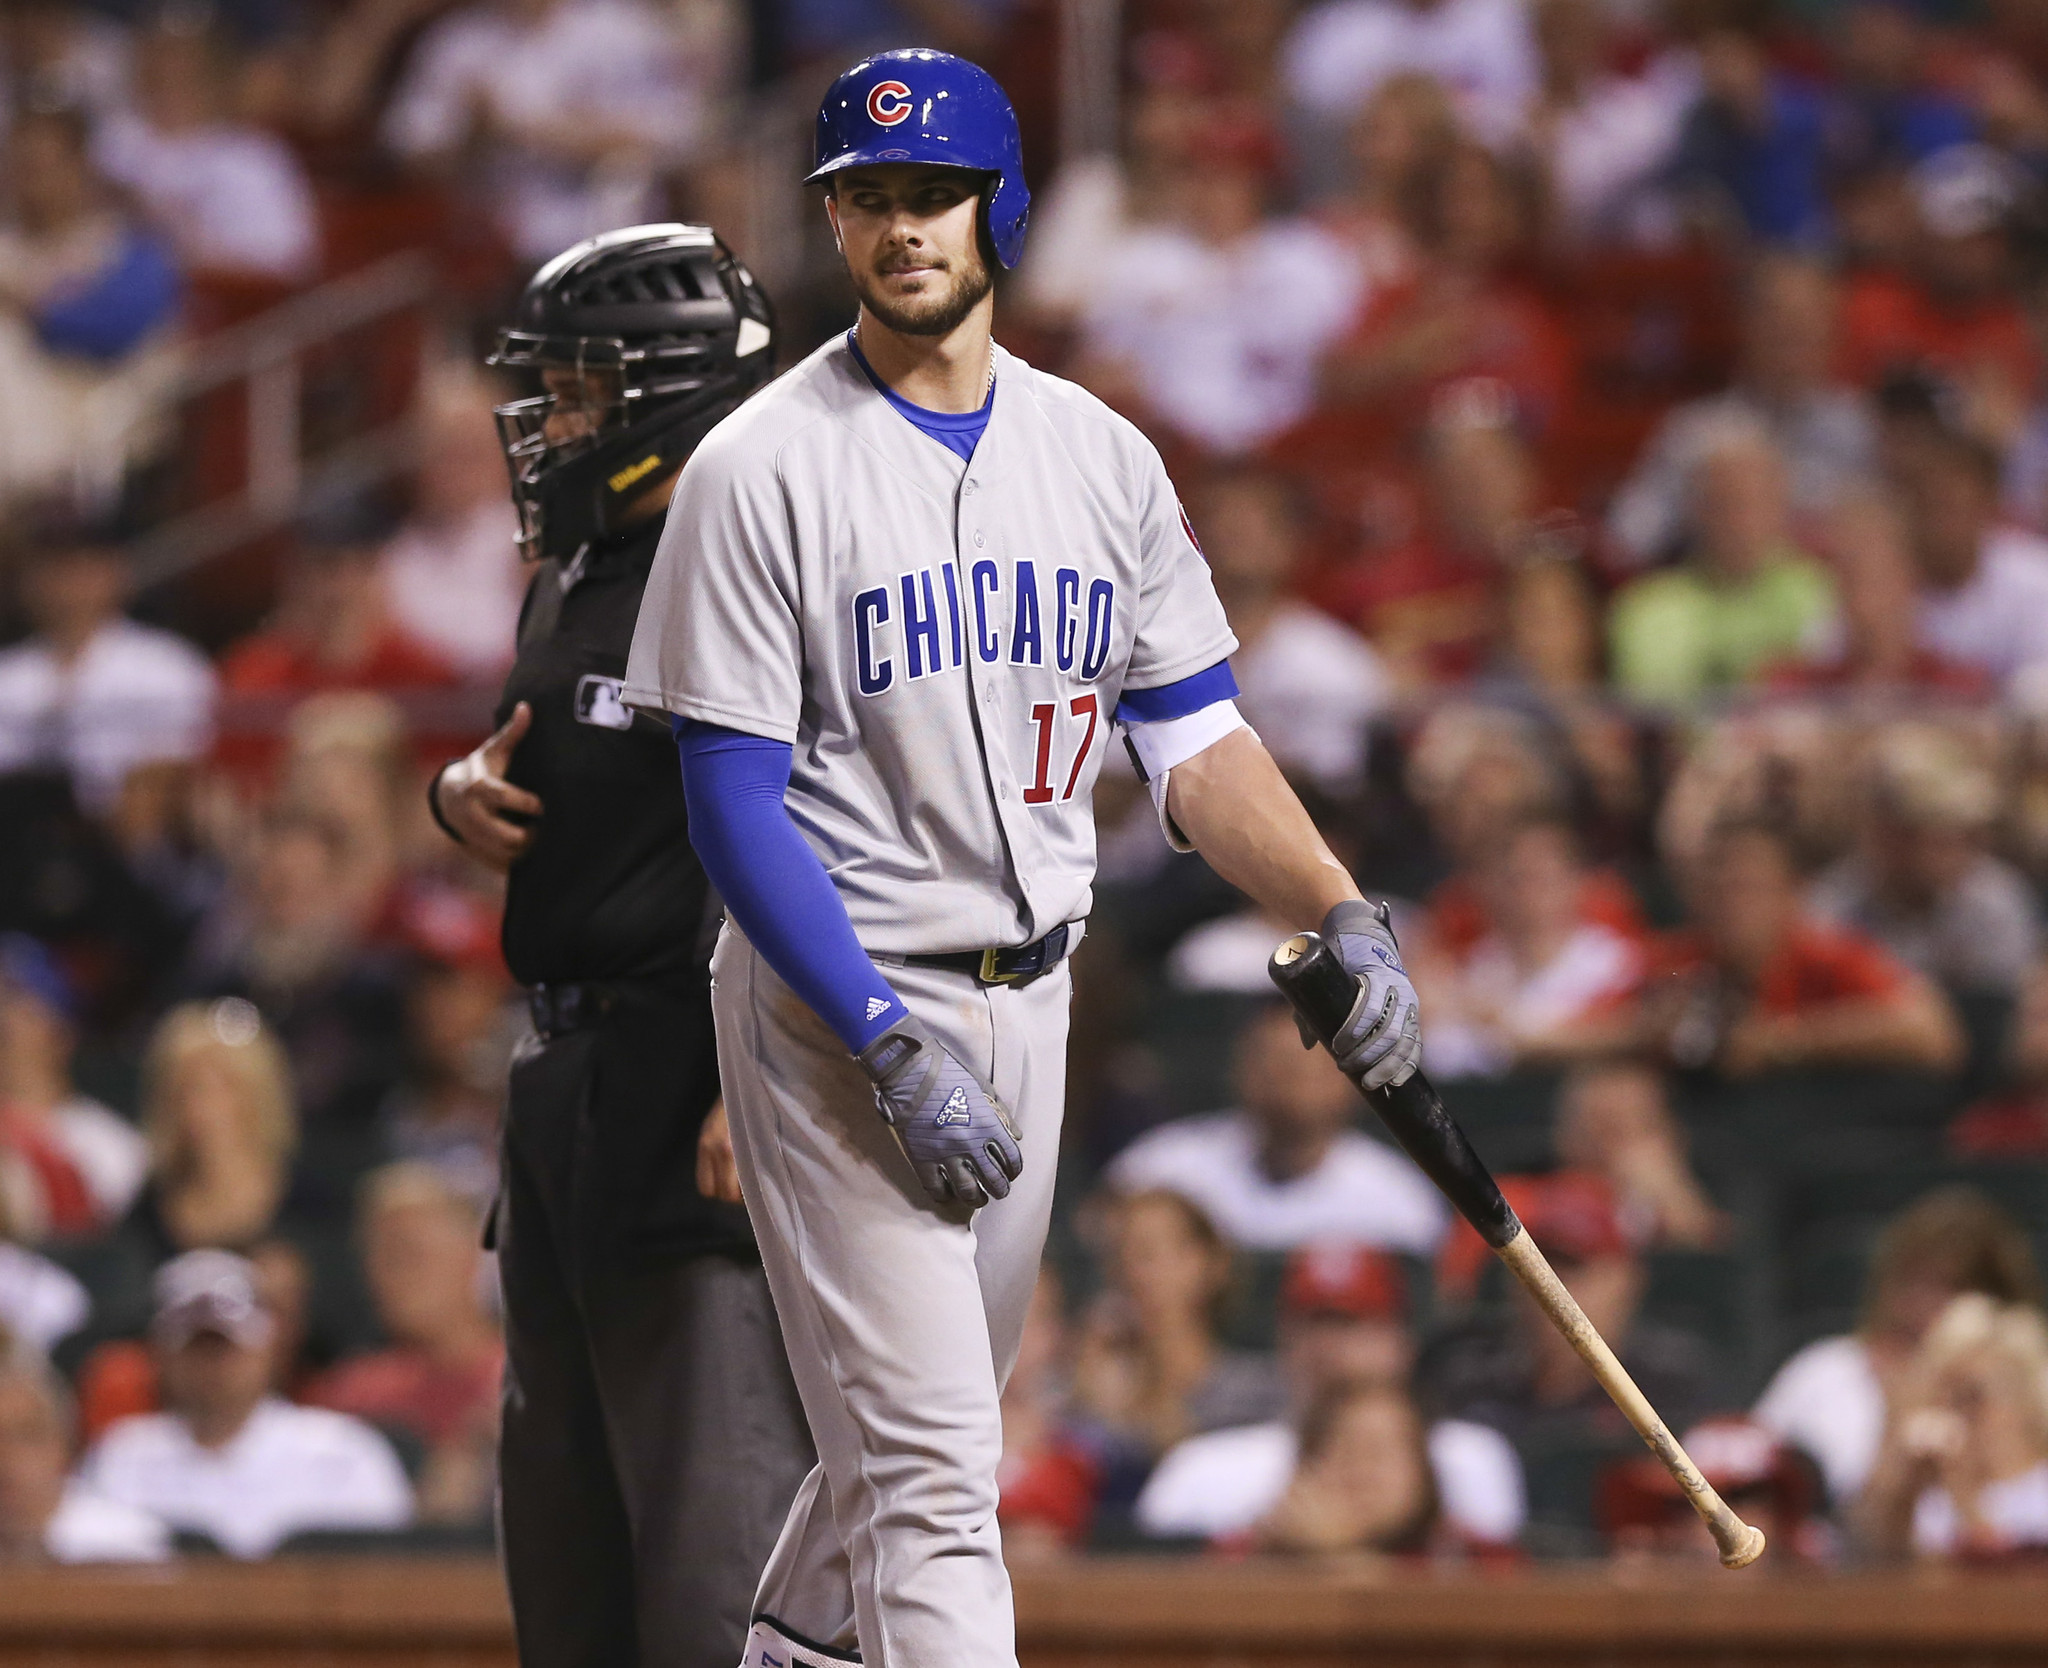 Ct-cubs-want-more-chirping-from-their-bats-20160523